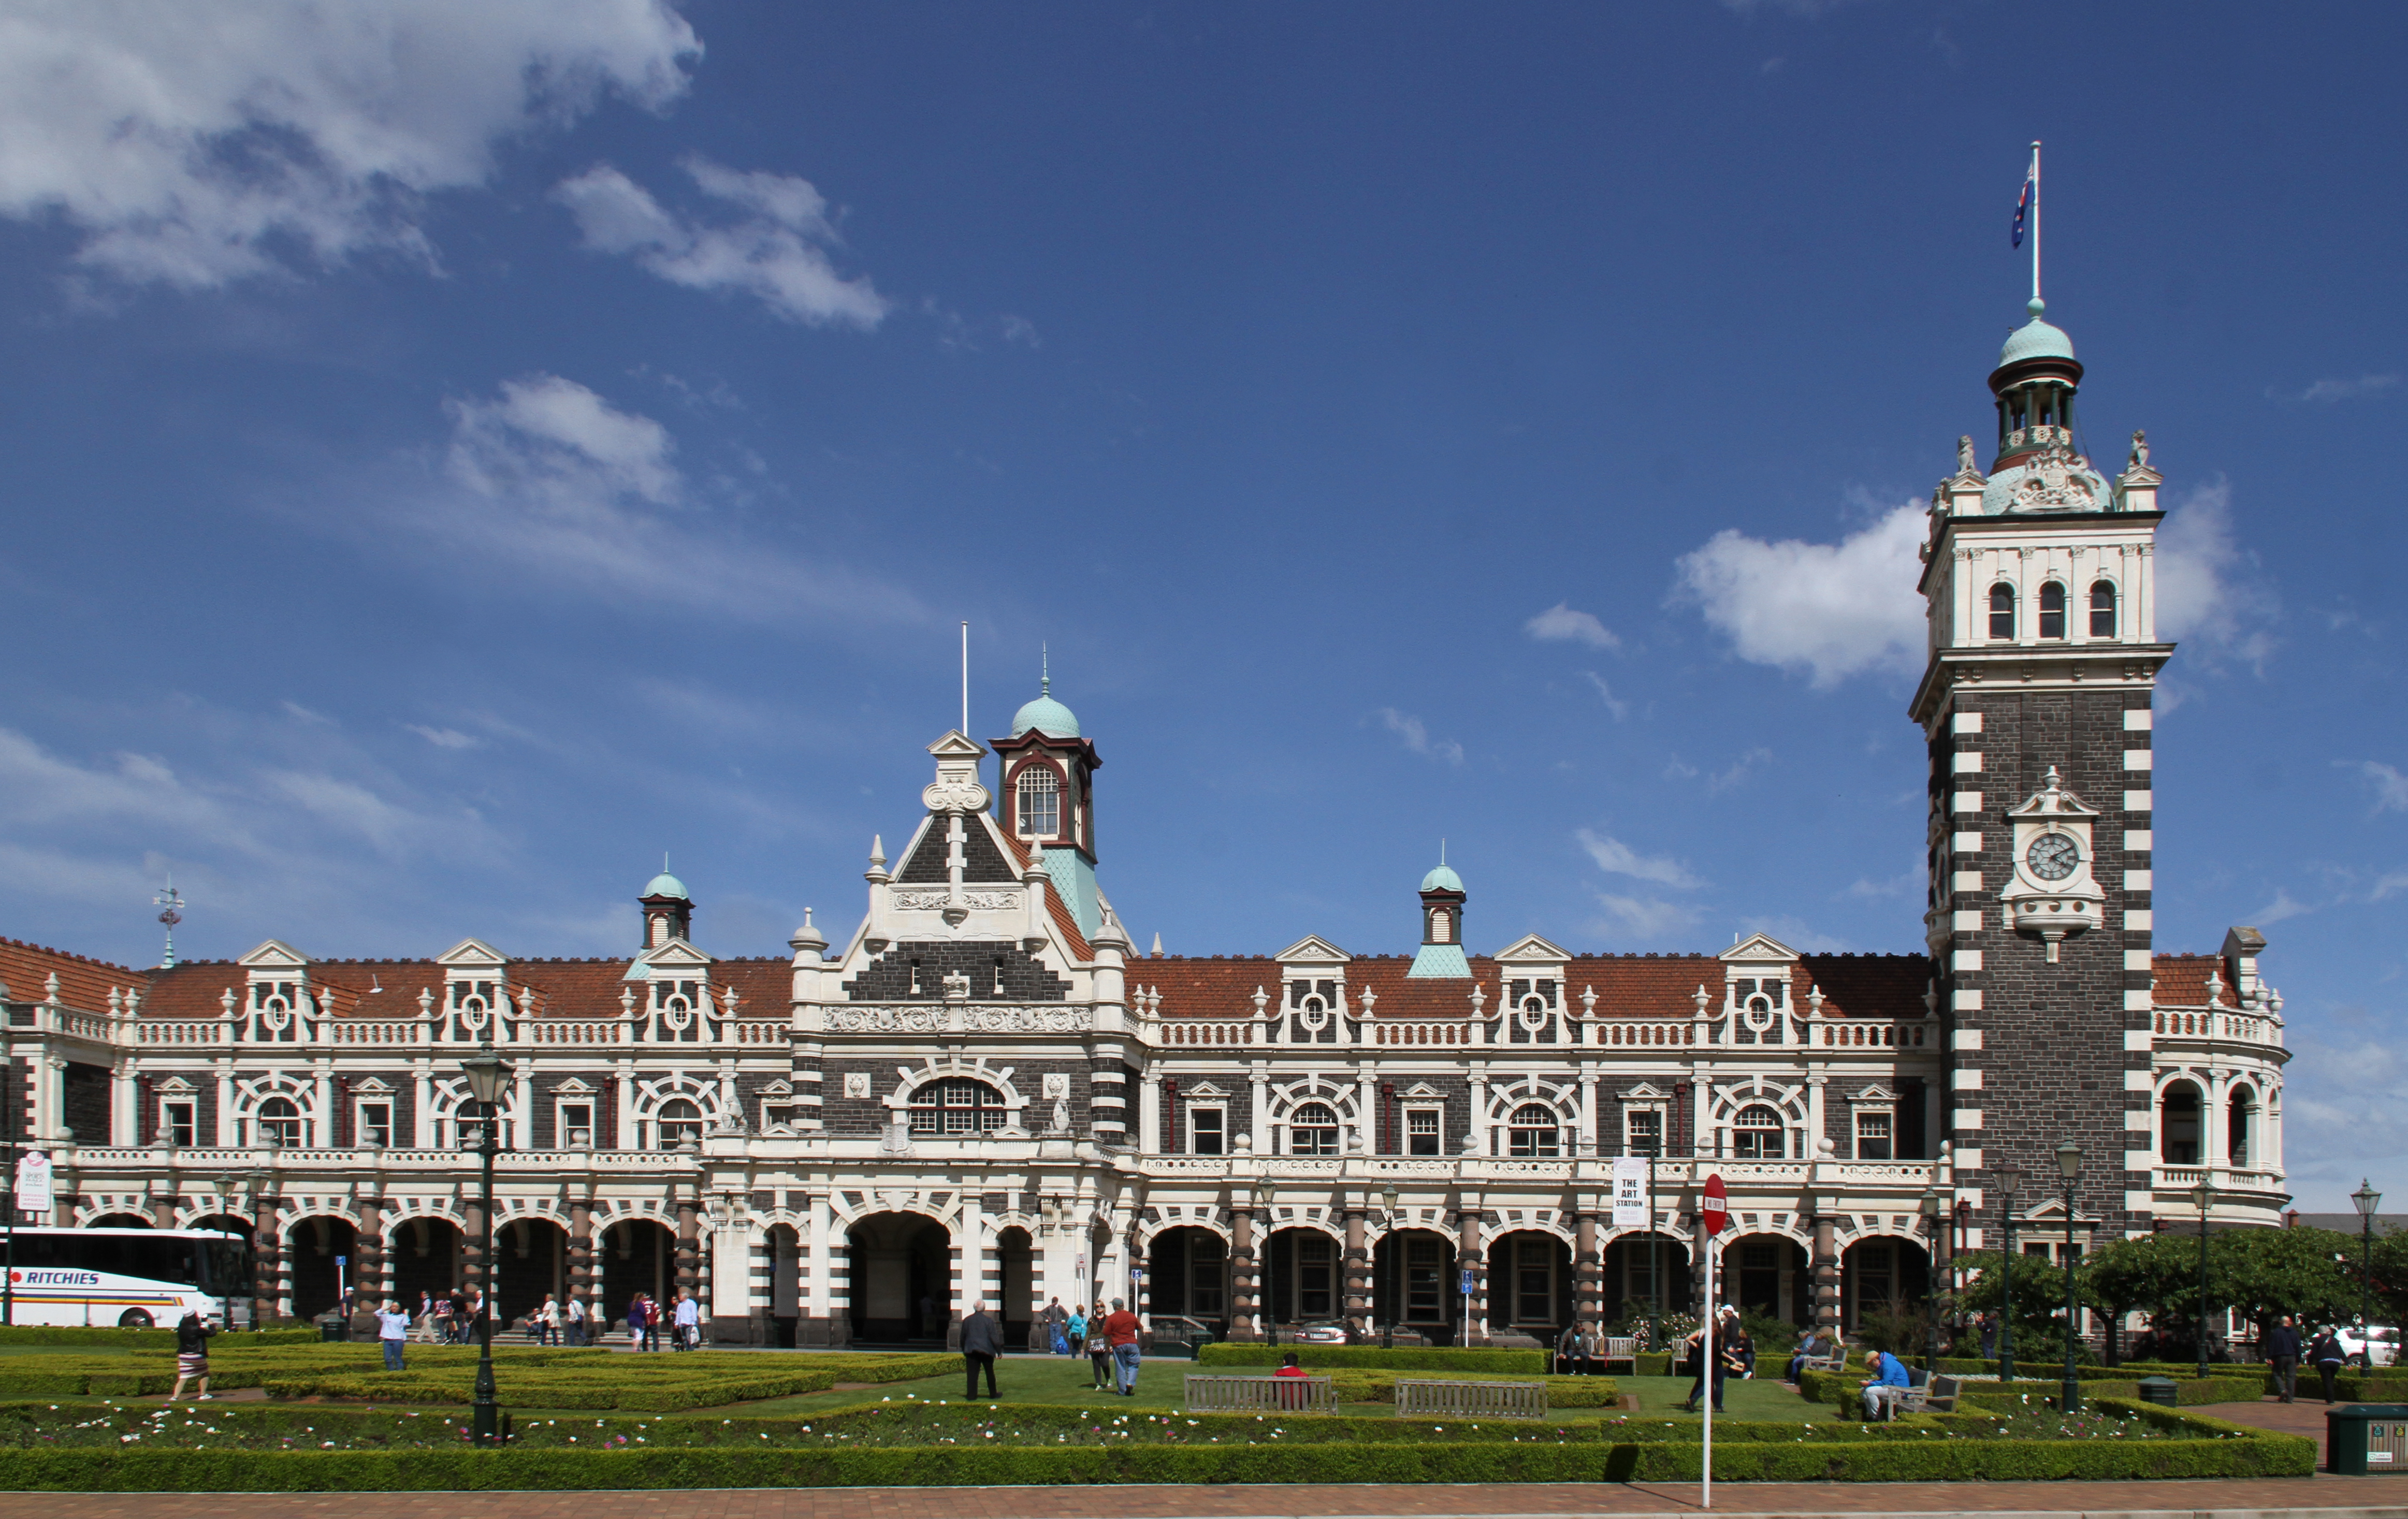 Dunedin Railway Station Photo by Tony Hisgett